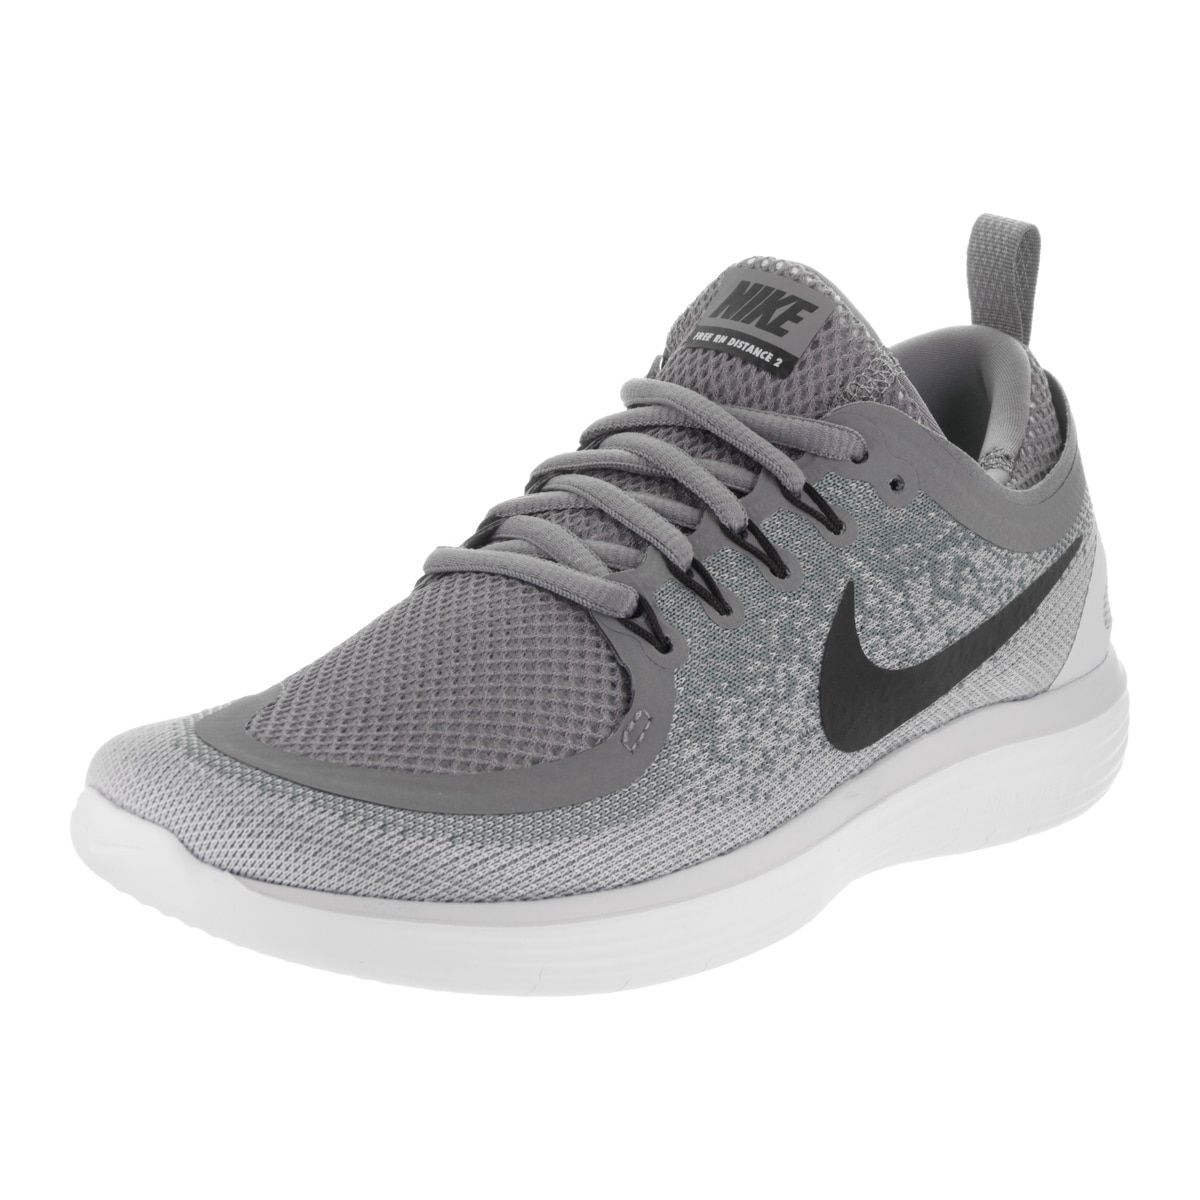 b3556517a35 Nike Women s Free Run Distance 2 Running Shoes by Nike